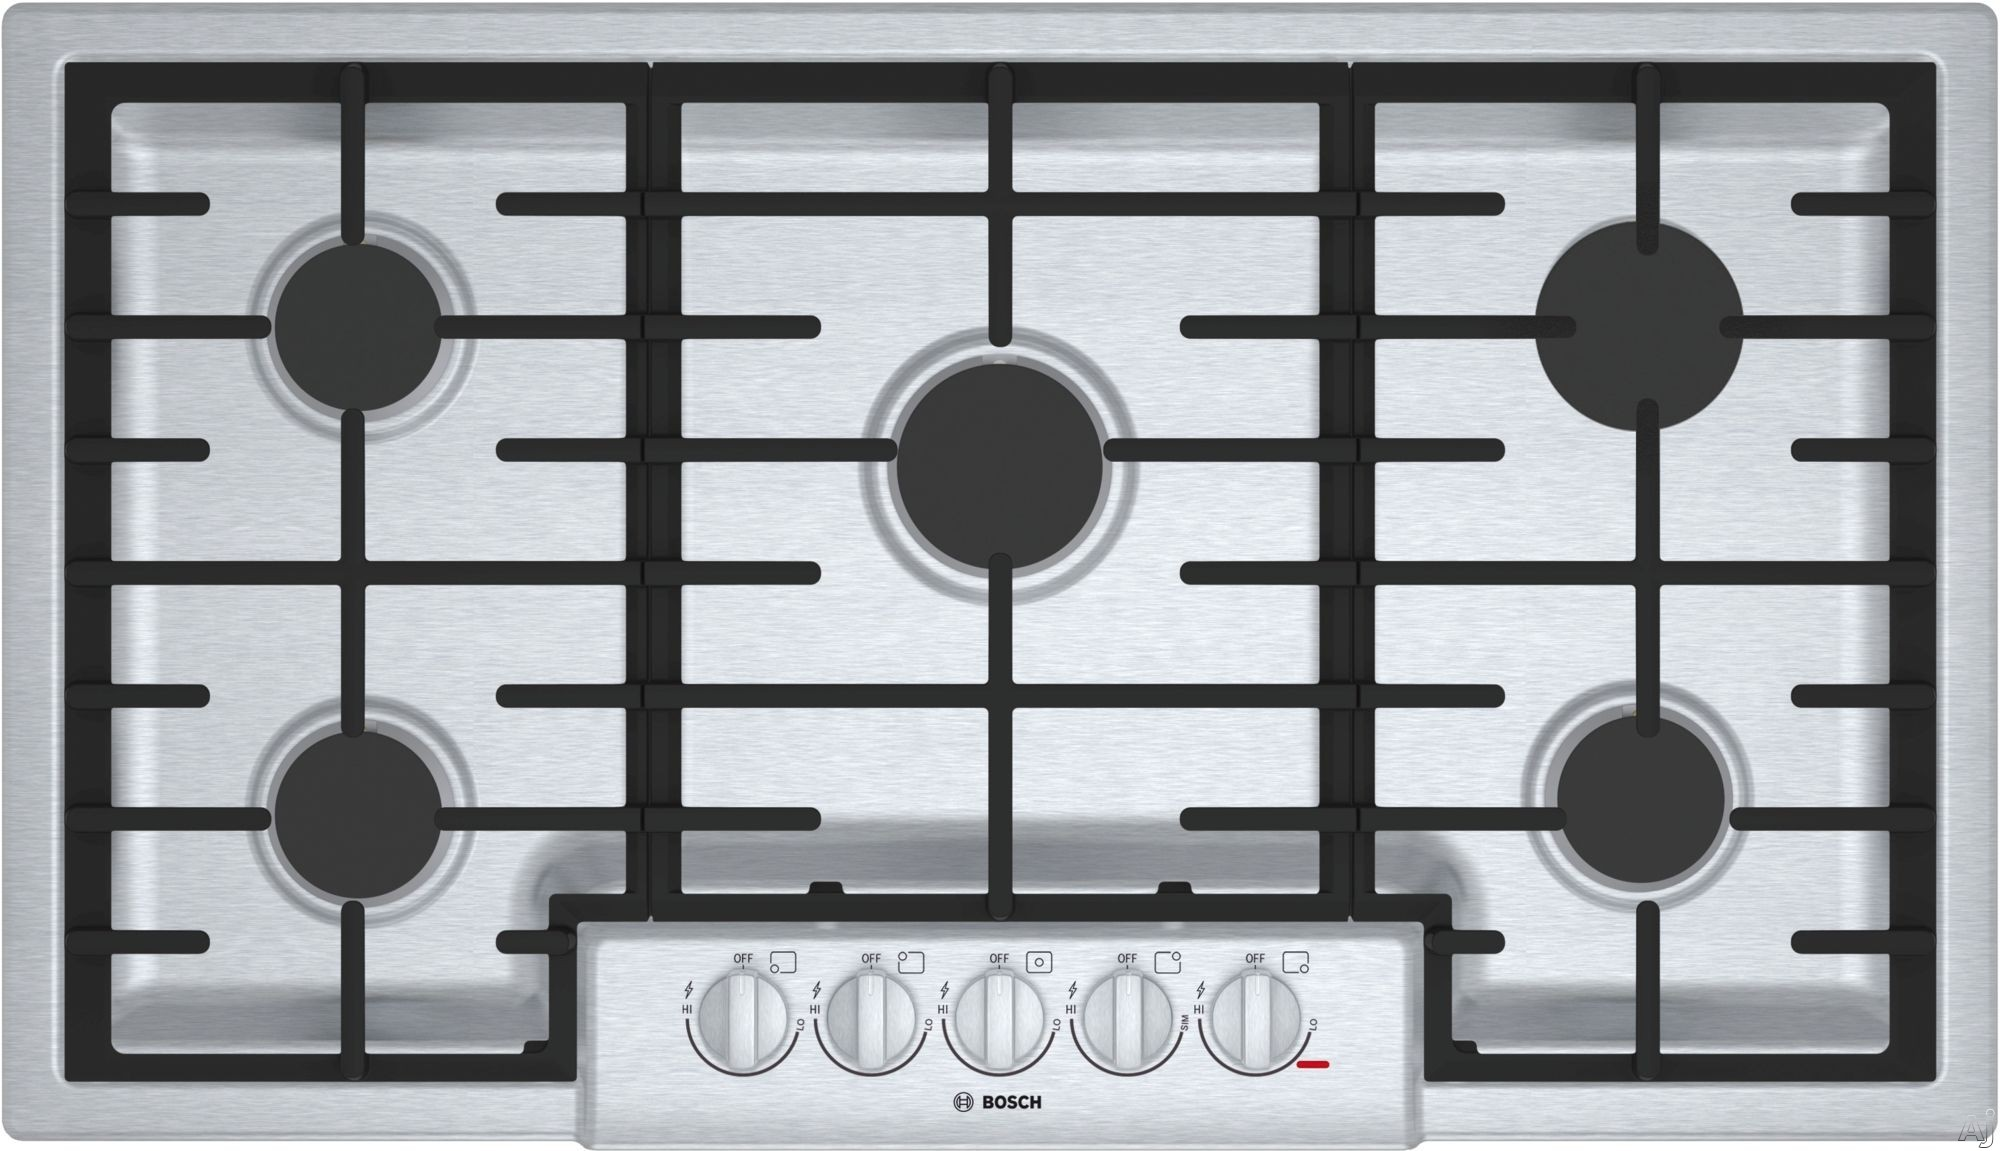 Bosch 800 Series NGM8656UC 36 Inch Gas Cooktop with Sealed Burners, OptiSim® Burner, Cast-Iron Continuous Grates, LED Indicator Lights, Electronic Re-ignition and